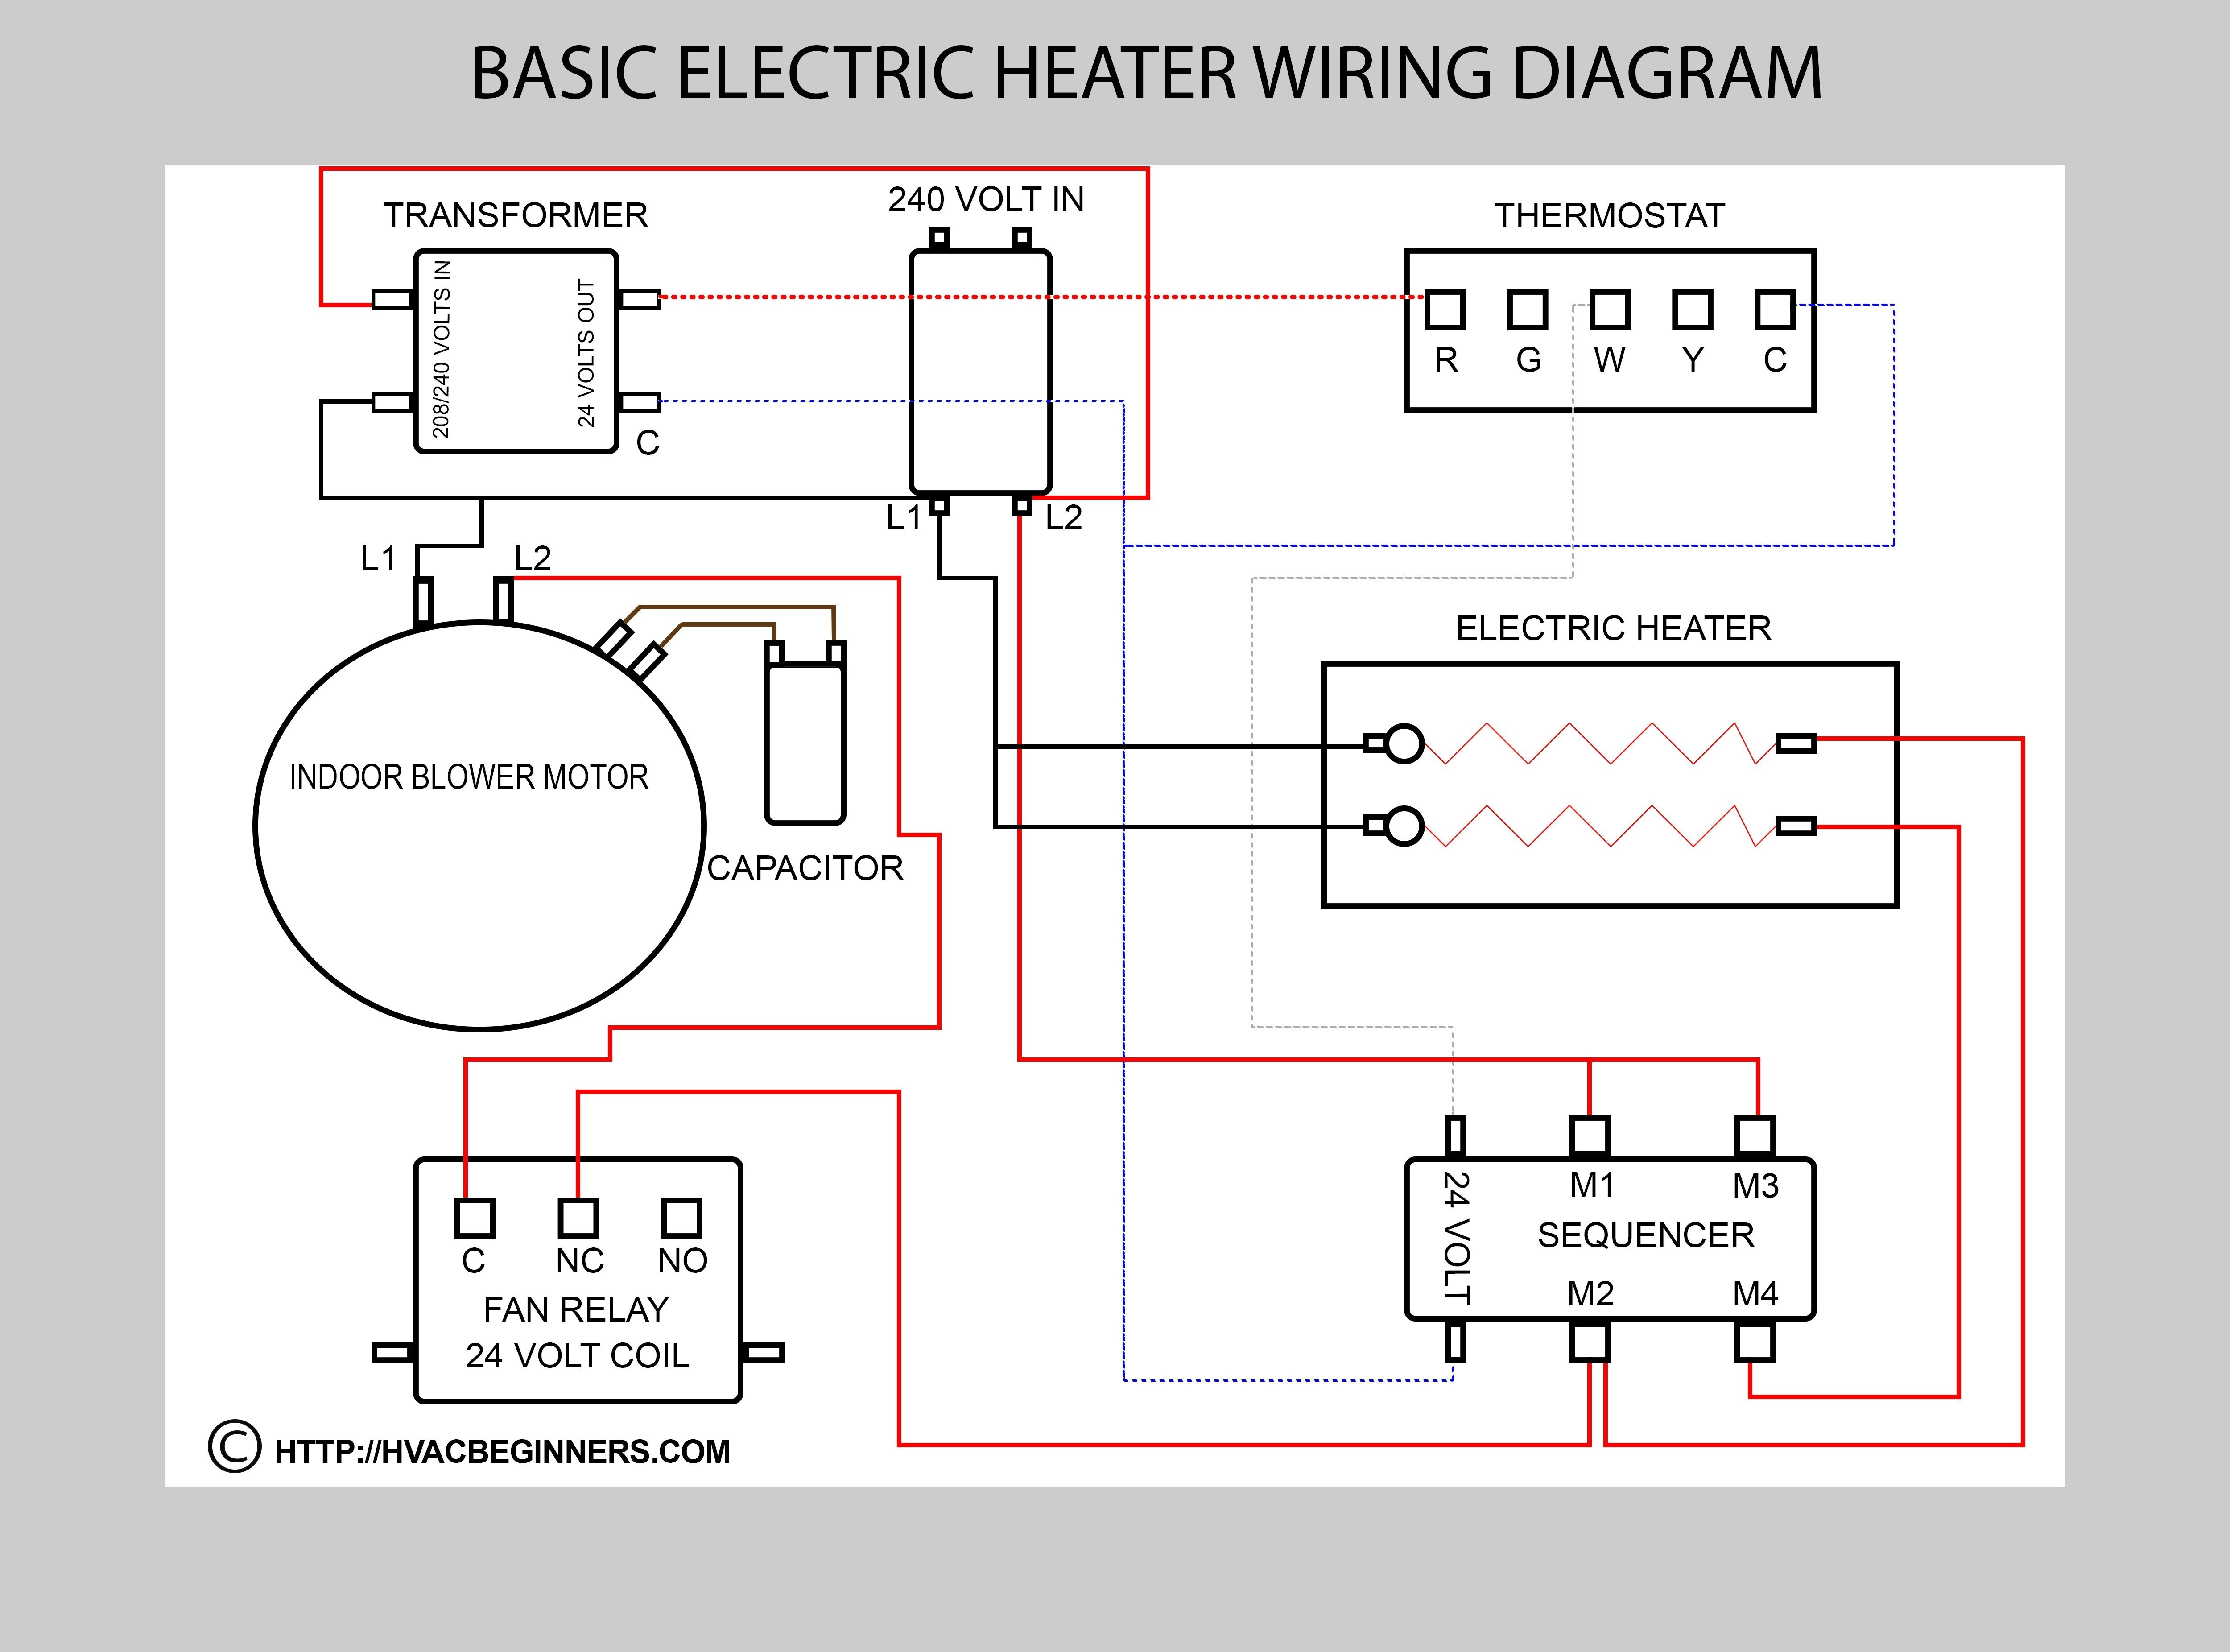 hvac wiring diagram software Collection-Fan Relay Wiring Diagram Unique Fan Relay Wiring Diagram Hvac Wiring solutions 4-h